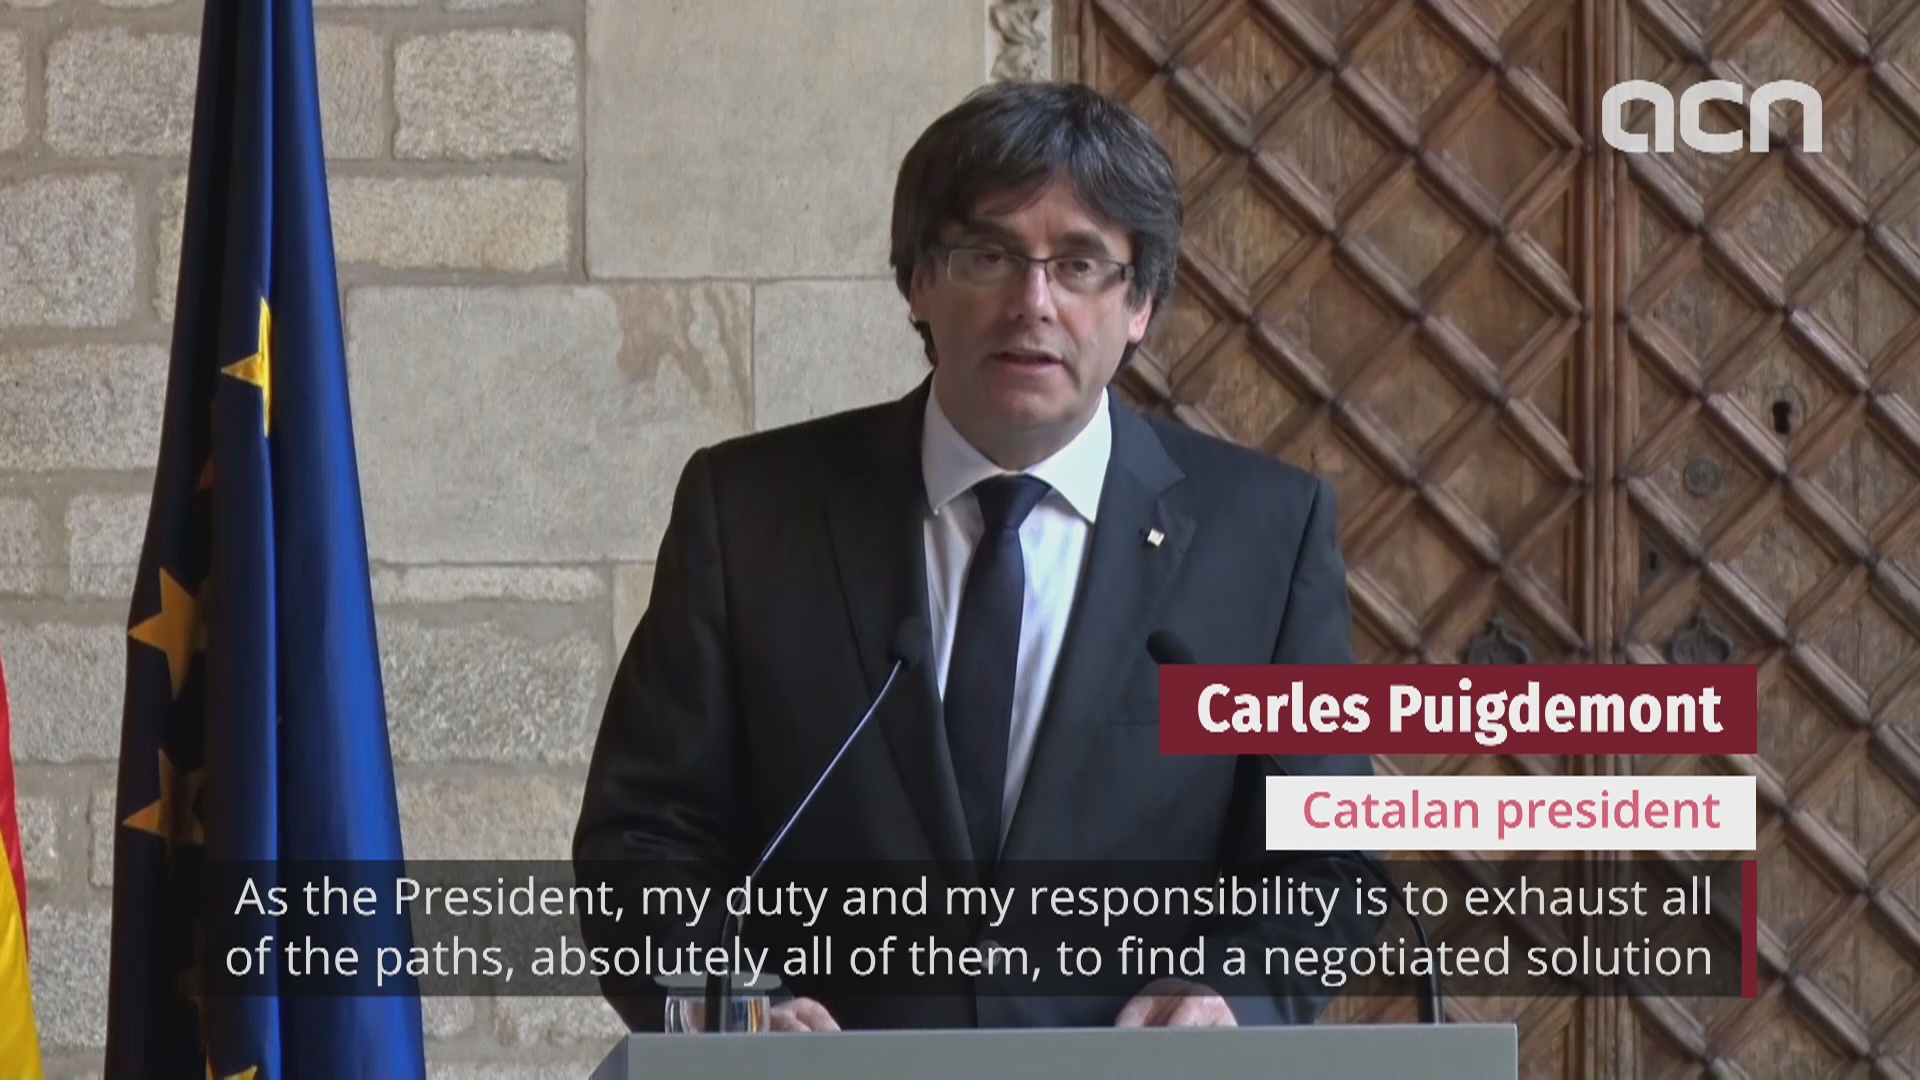 Declaration of independence back on the table - Puigdemont won't call early election